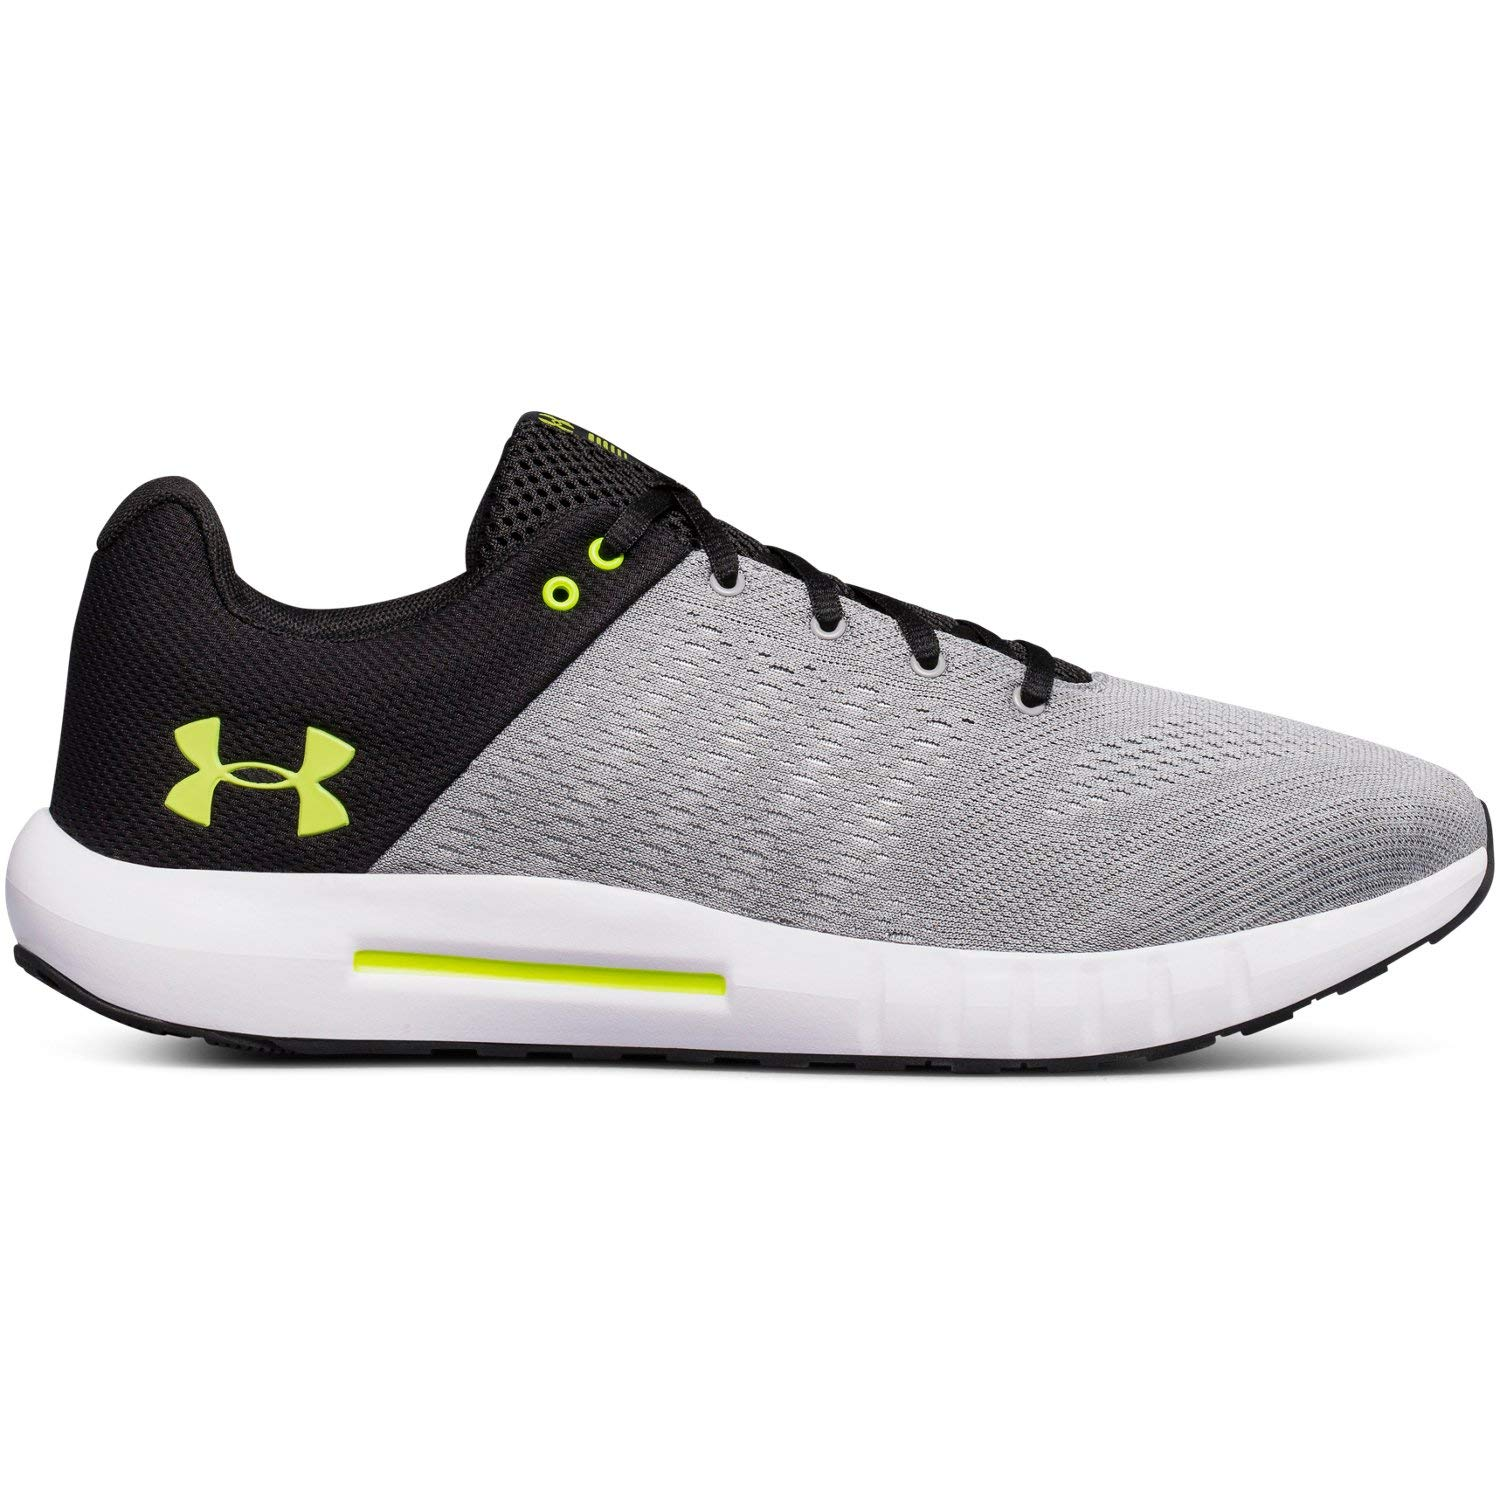 Under Armour Men's Micro G Pursuit-Wide, Steel (101)/Rhino Gray, 11.5 by Under Armour